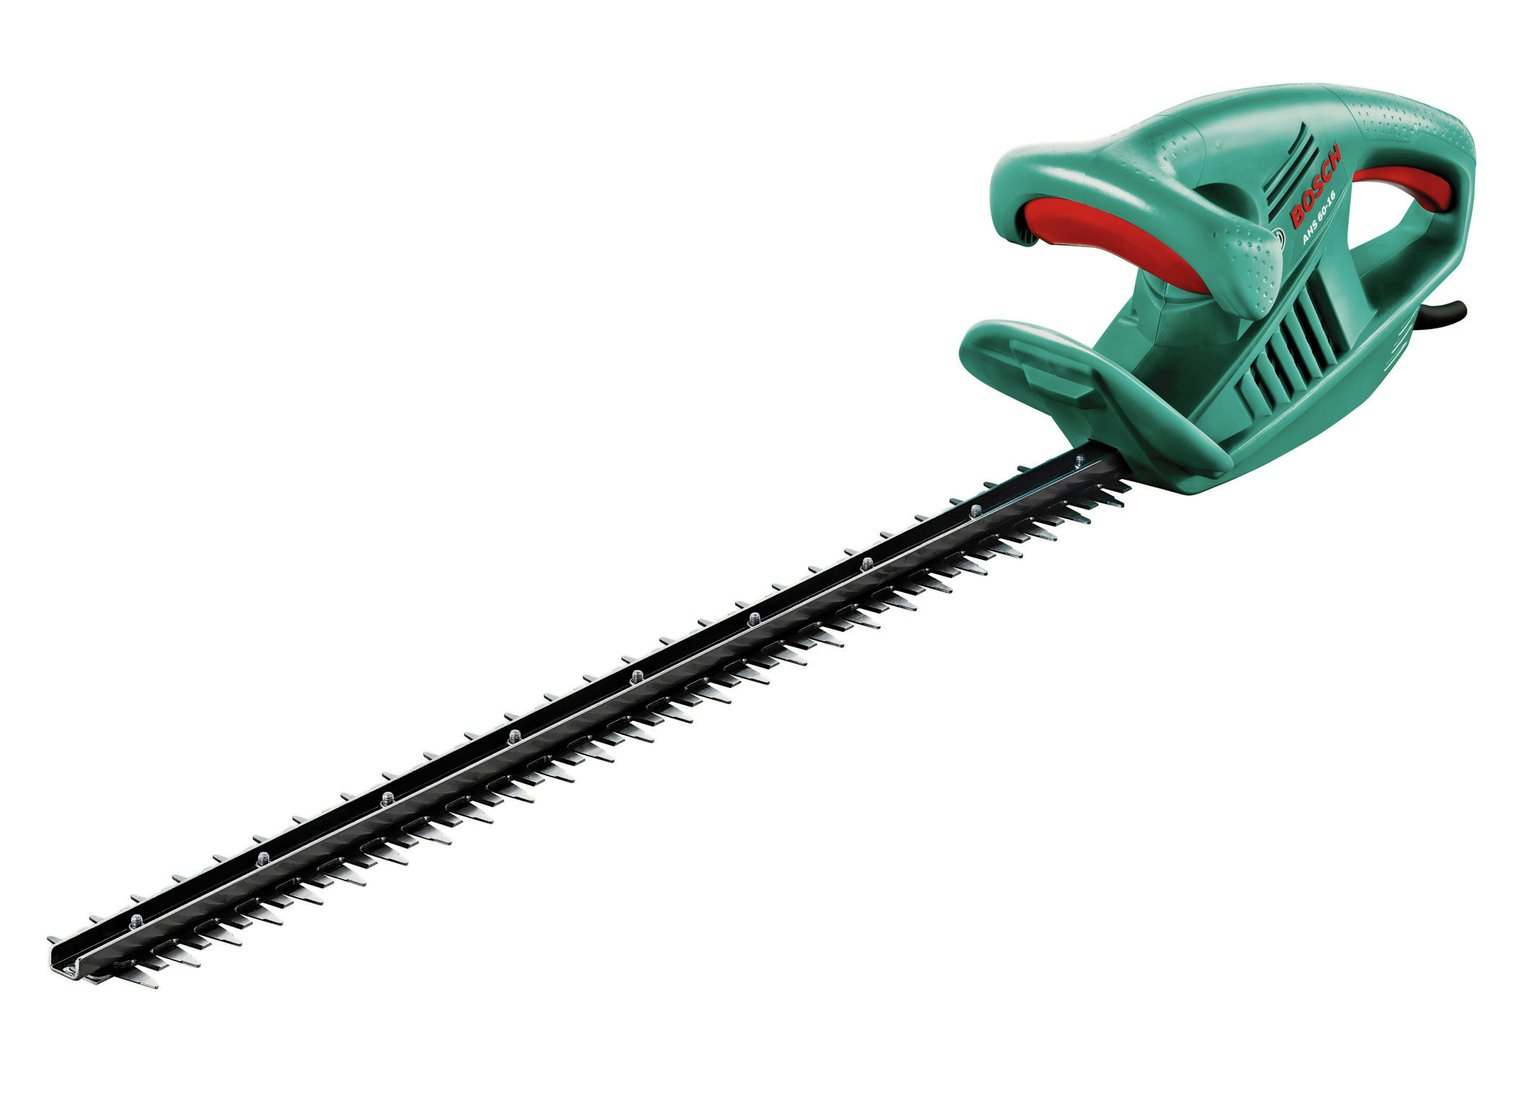 Bosch Ahs 60-16 60cm Corded Hedge Trimmer - 450W from Bosch